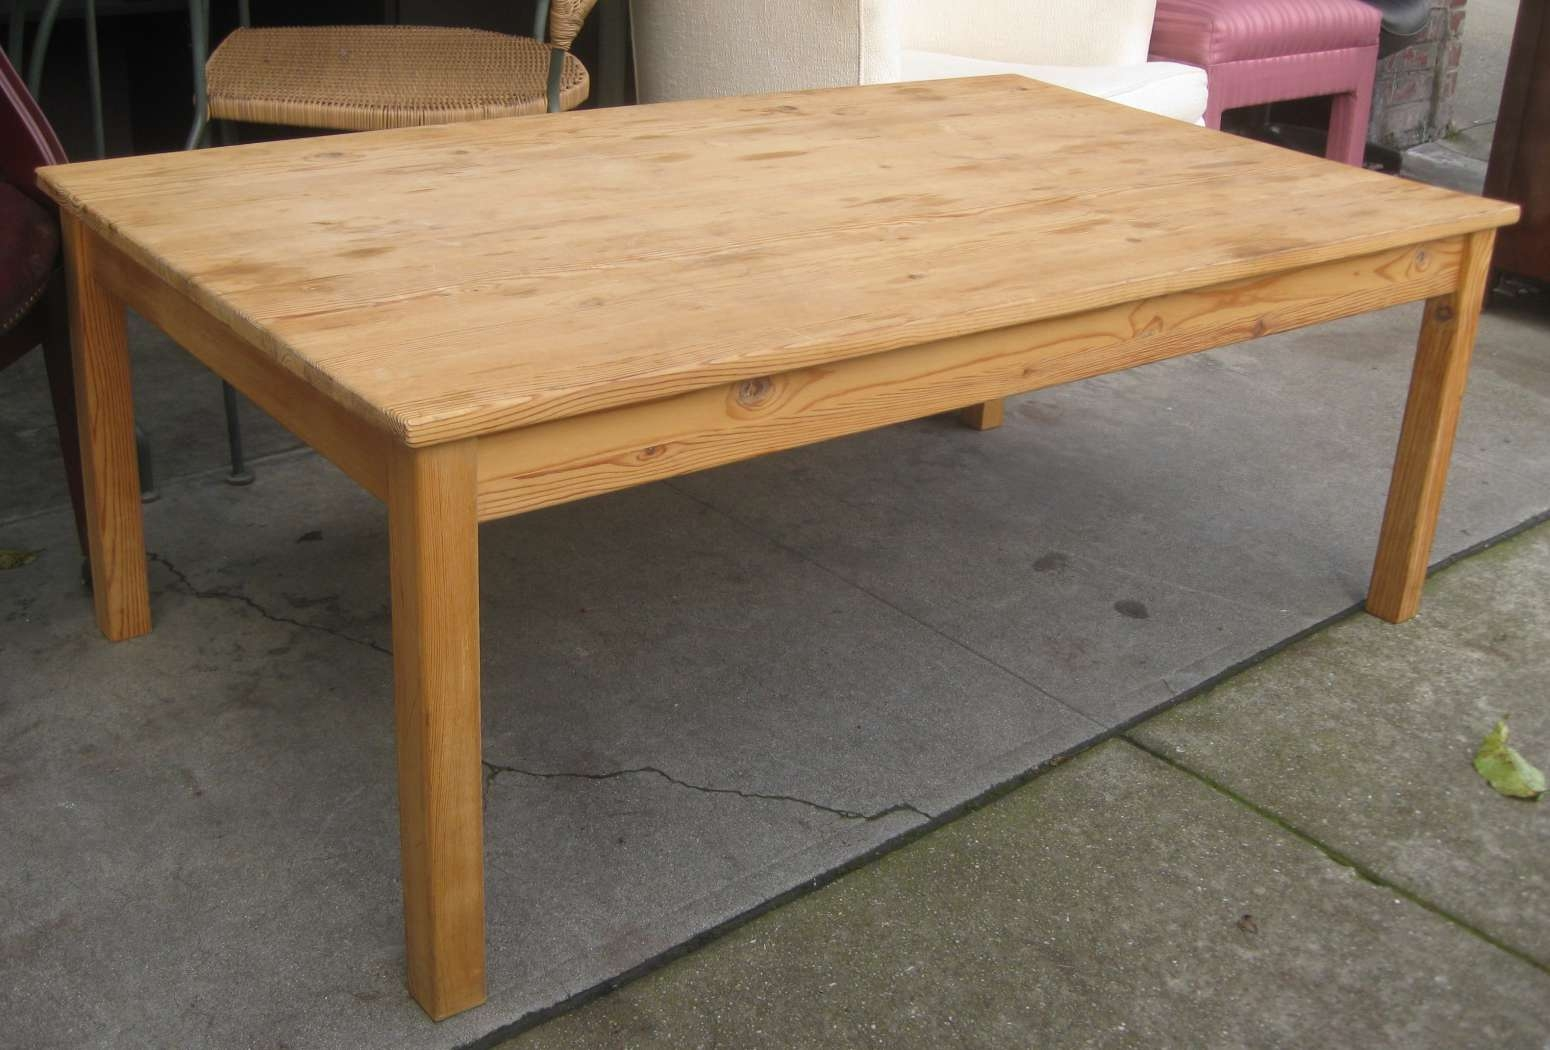 Uhuru Furniture & Collectibles: Sold – Pine Coffee Table – $25 Pertaining To Widely Used Pine Coffee Tables (View 19 of 20)